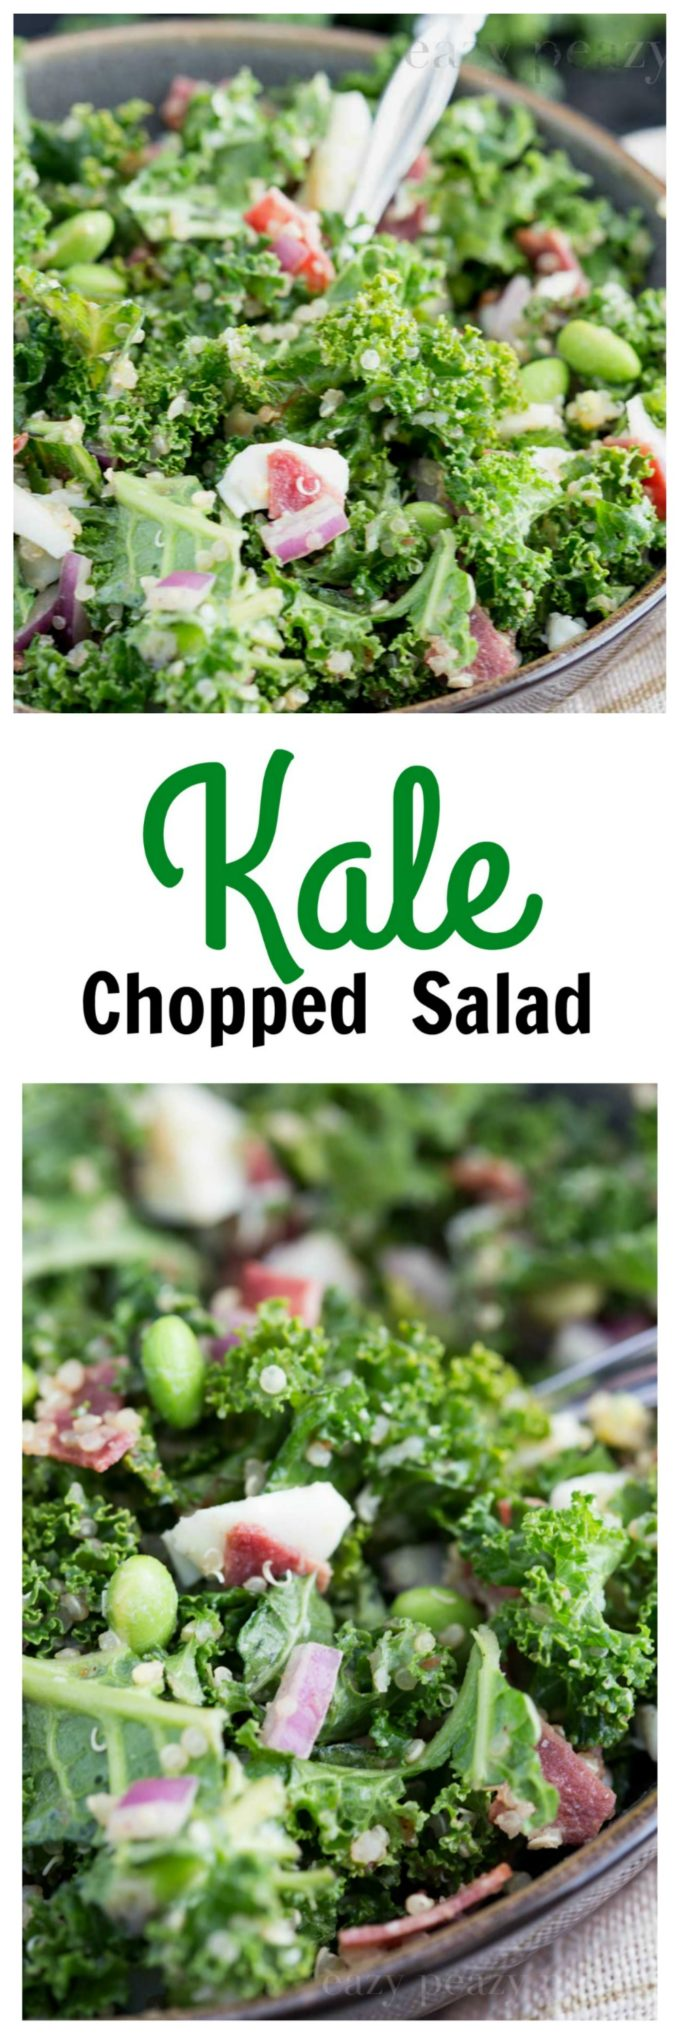 PIN Kale chopped salad